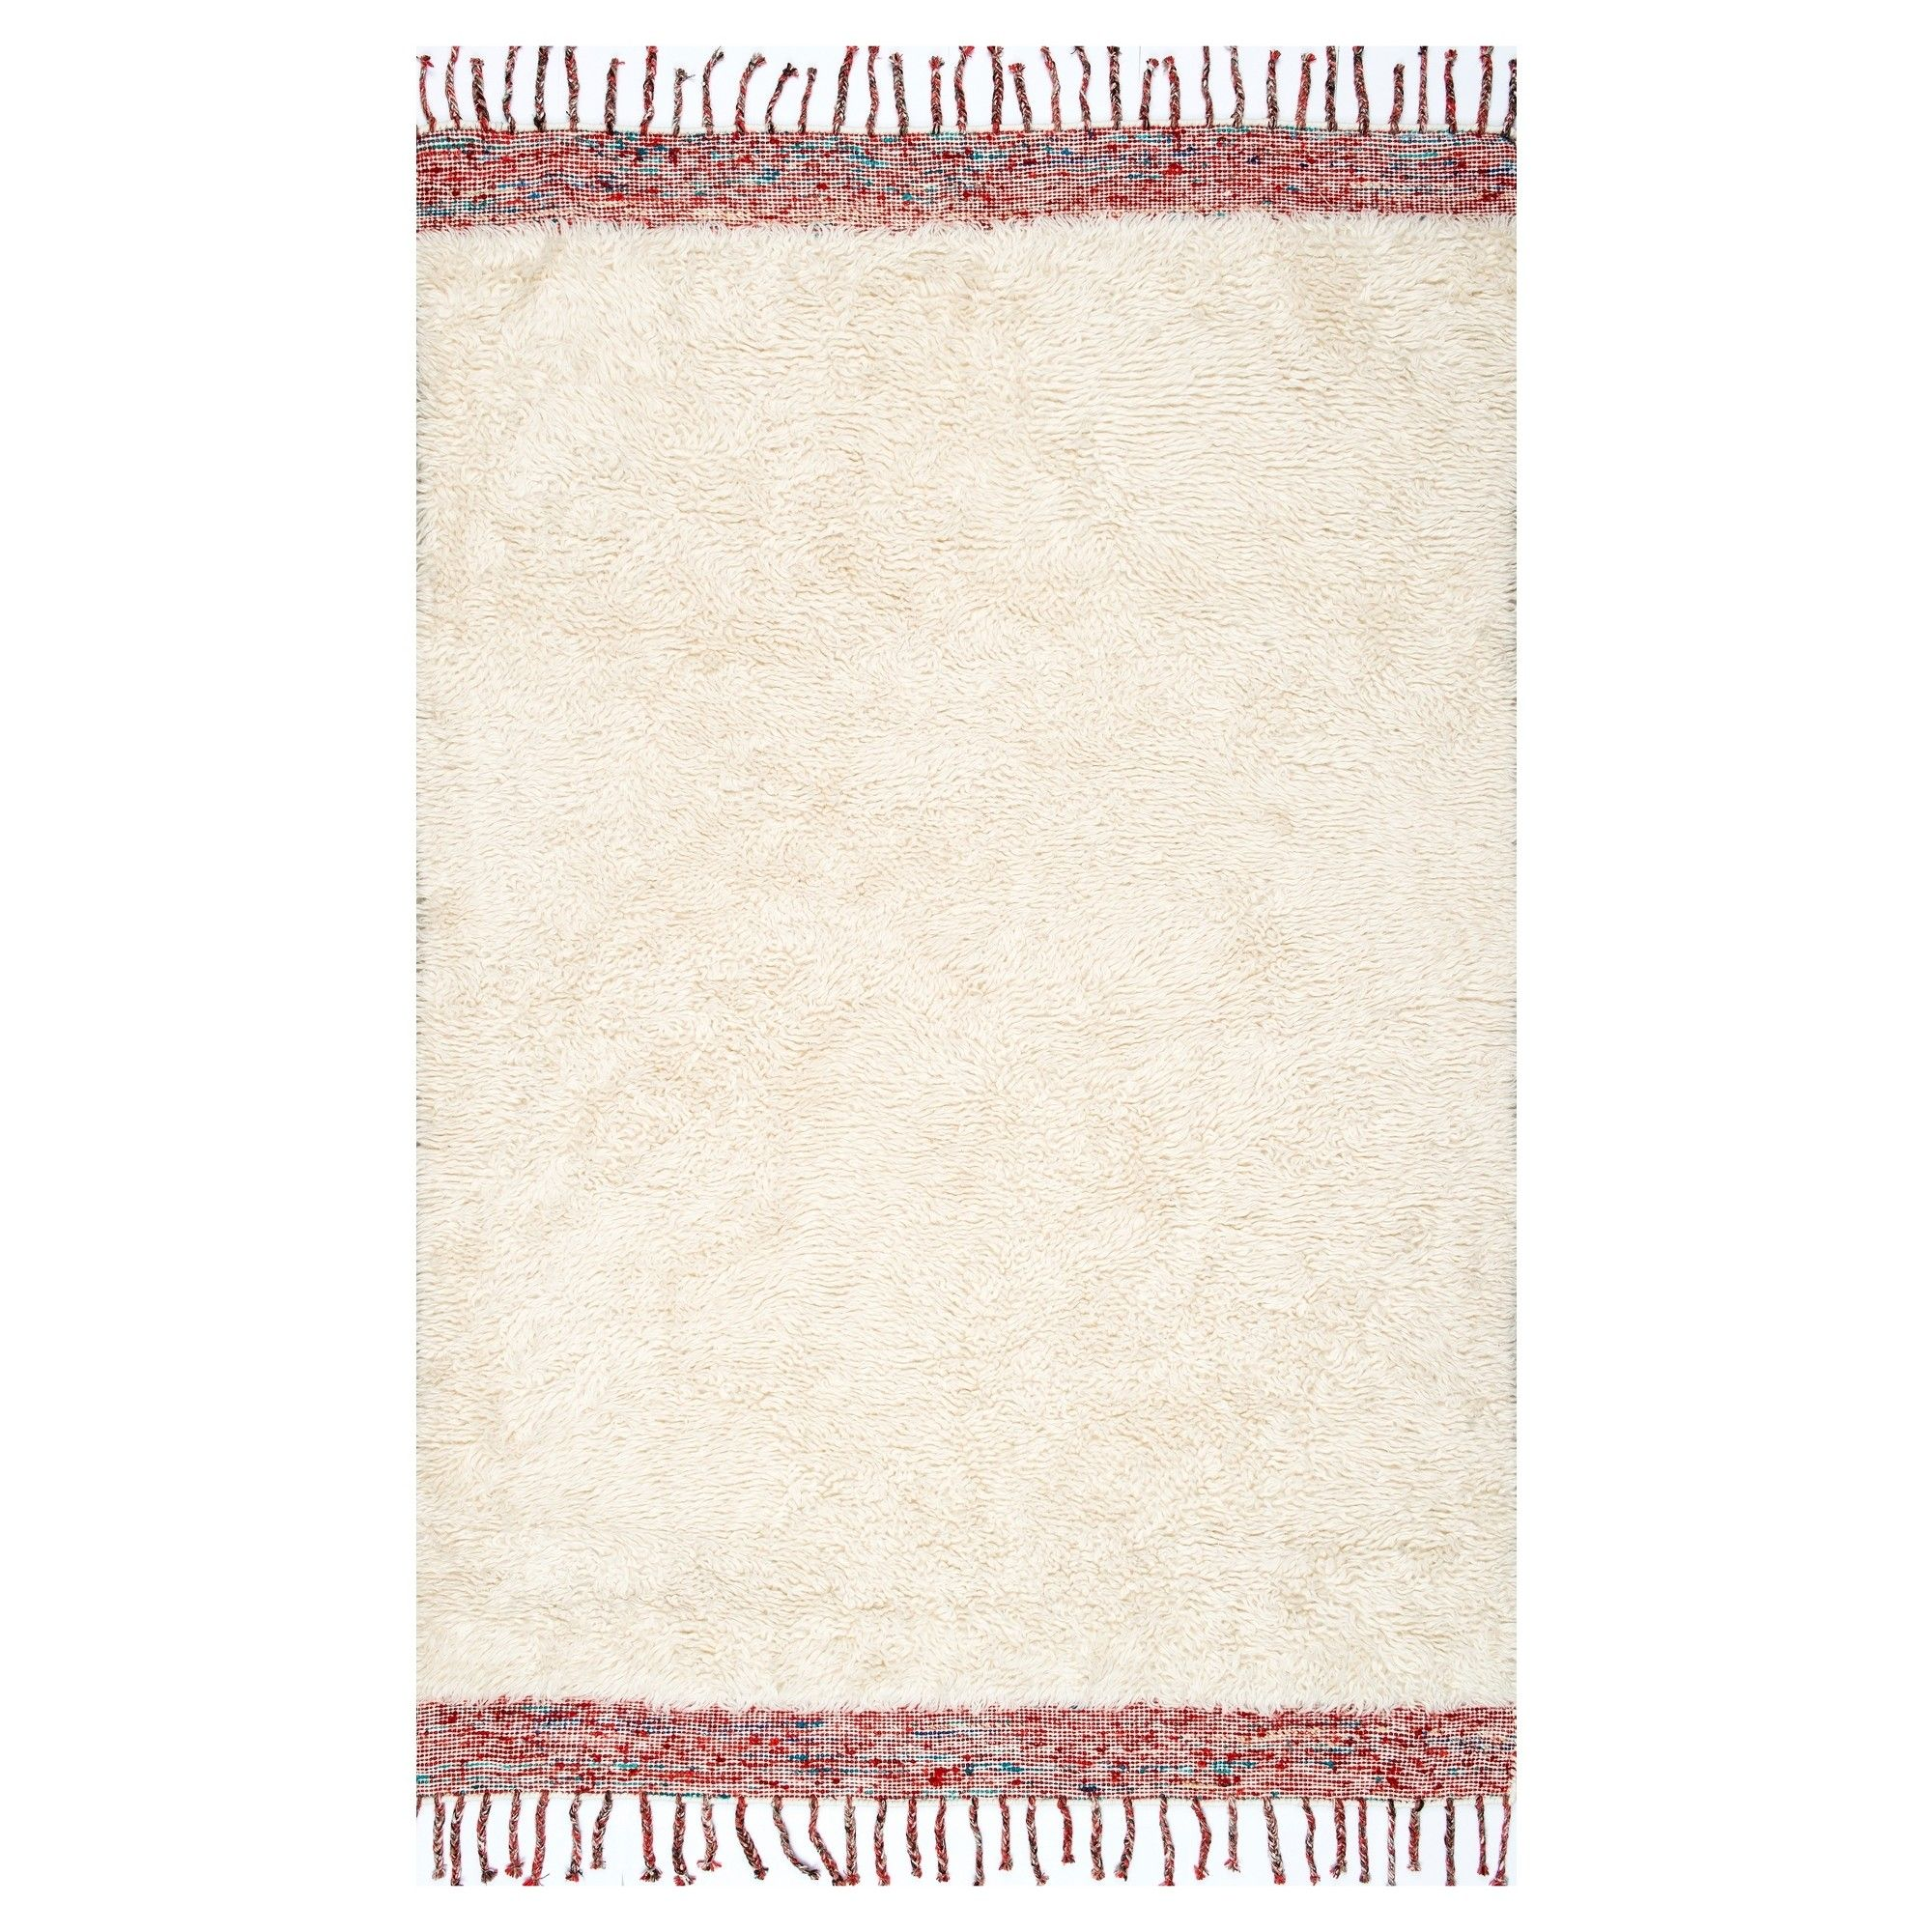 Off White Abstract Tufted Area Rug  (5X8), Blue Off White